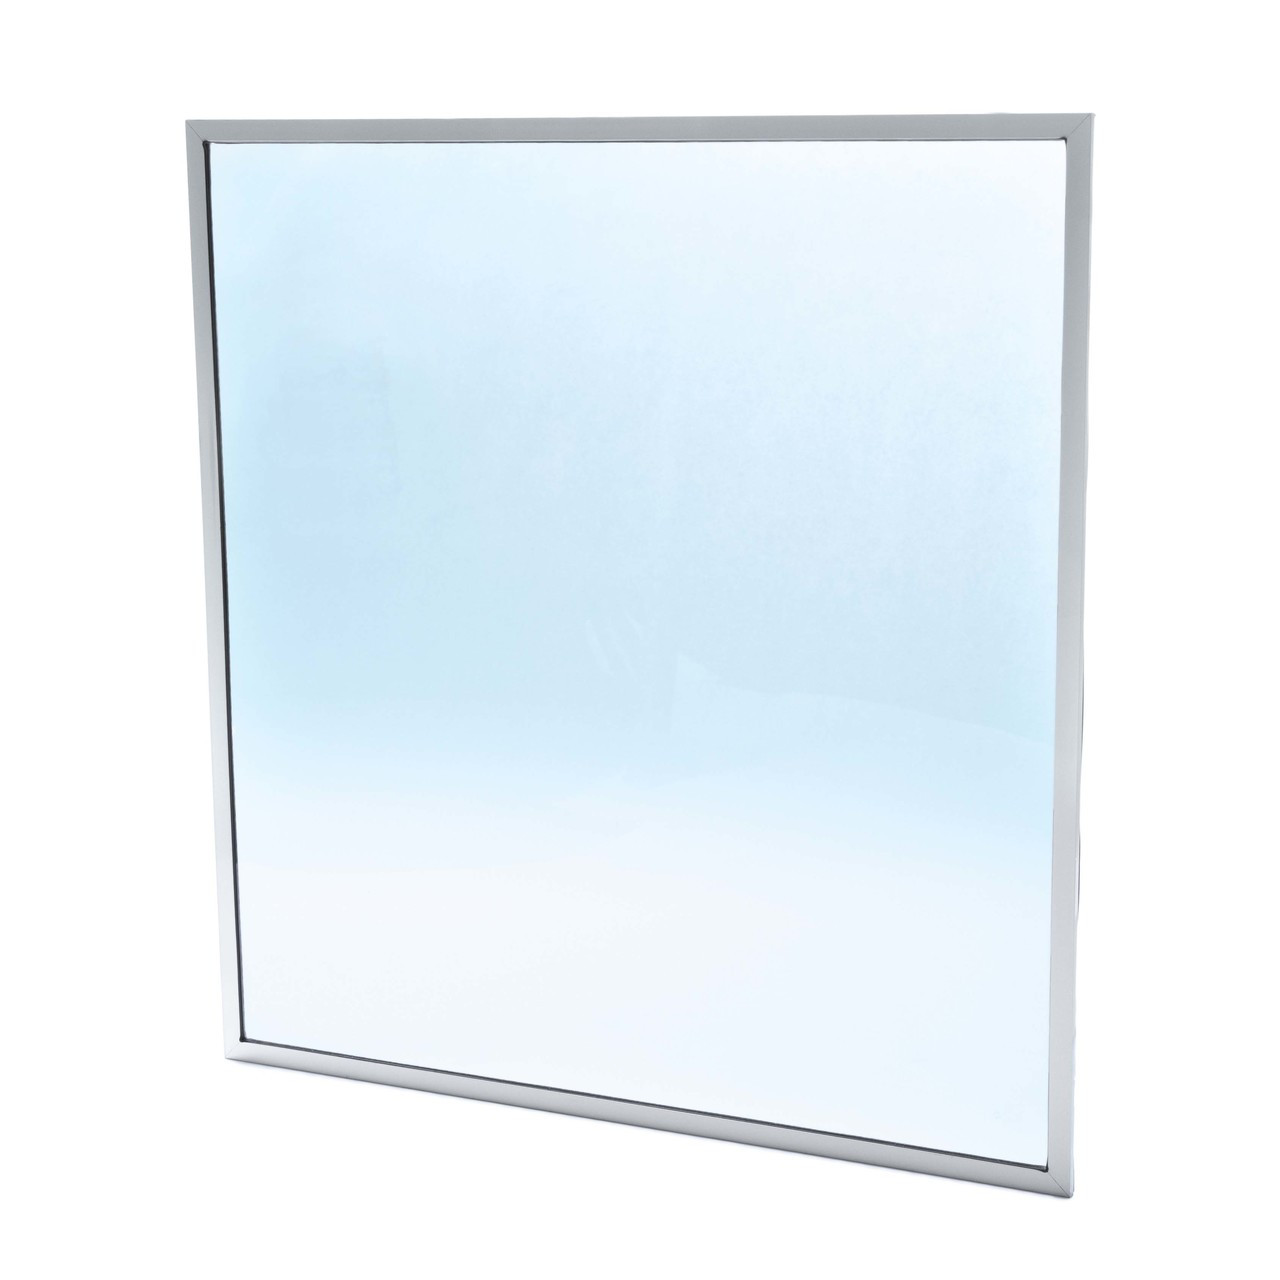 Tempered Glass Panels Tempered Glass Panel Buy